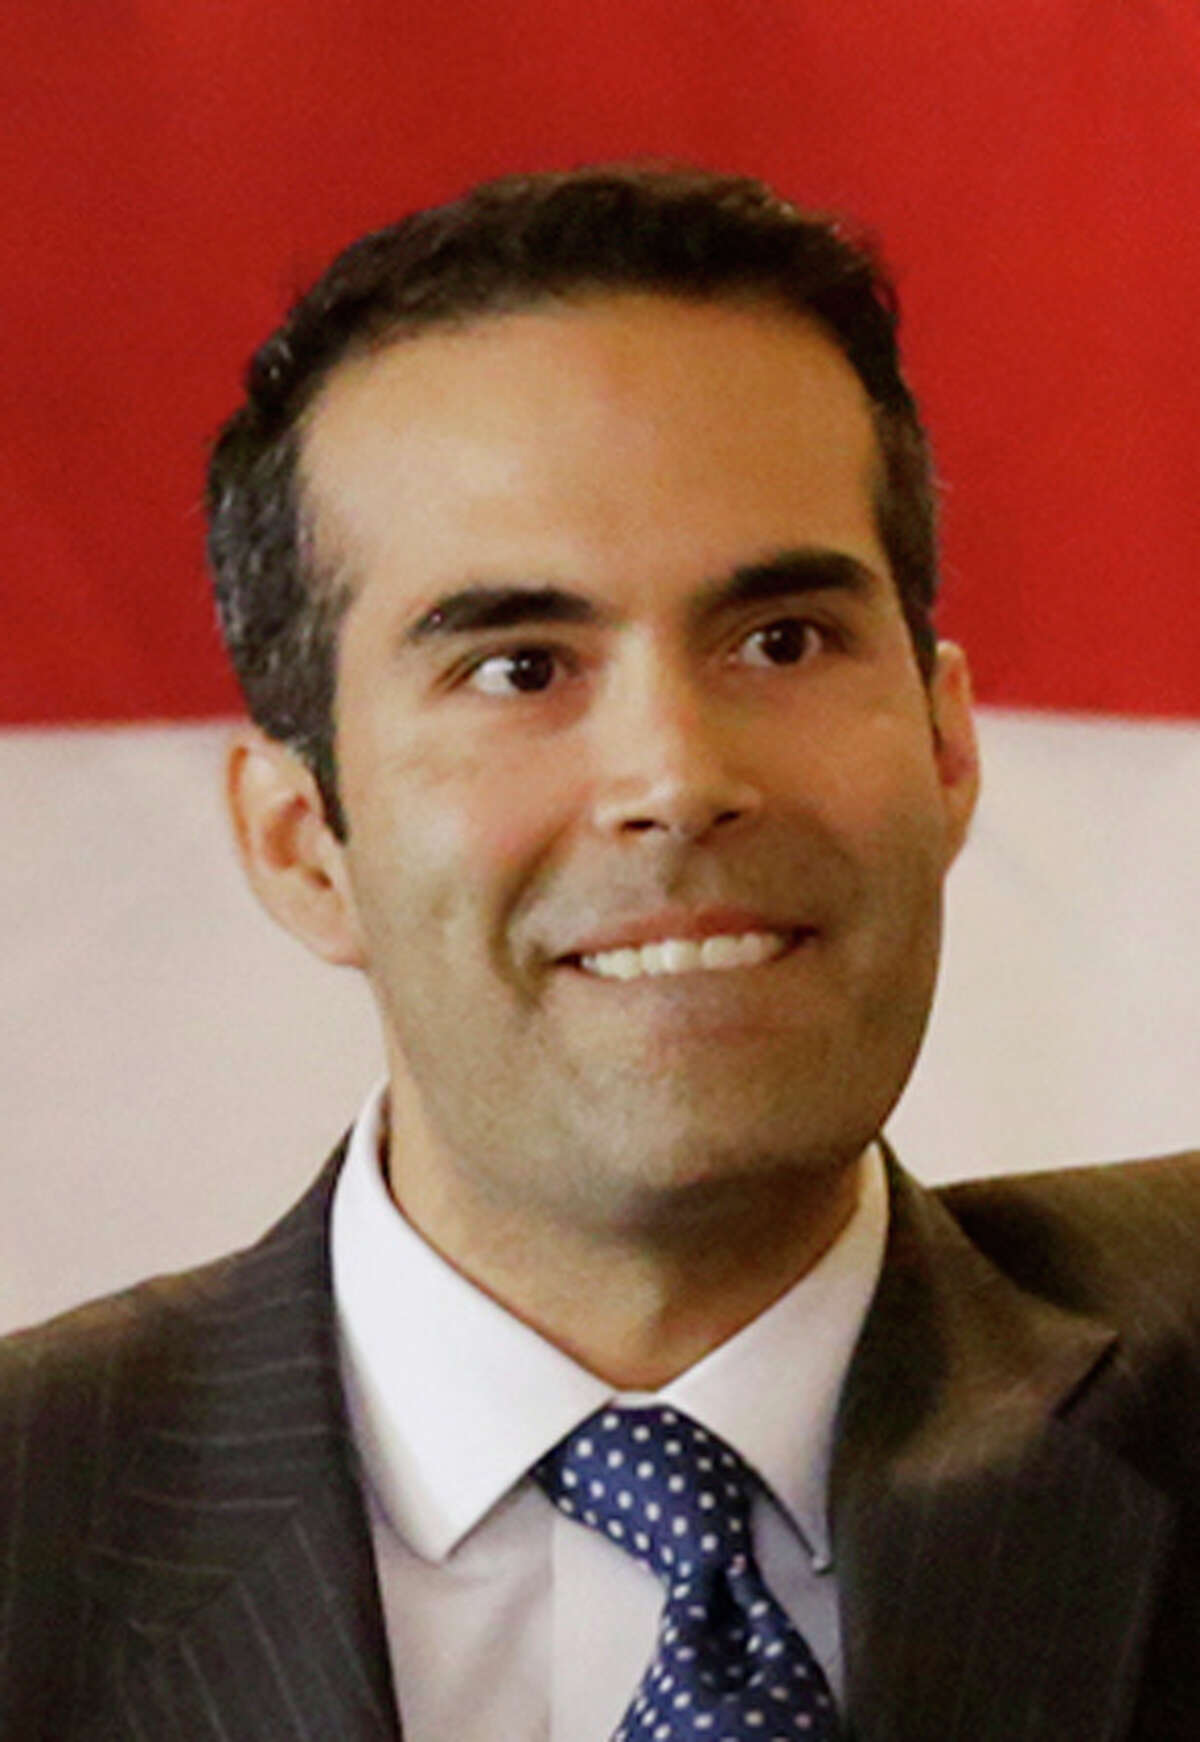 George P. Bush: Born in Houston, Bush currently serves as the Texas Land Commissioner.